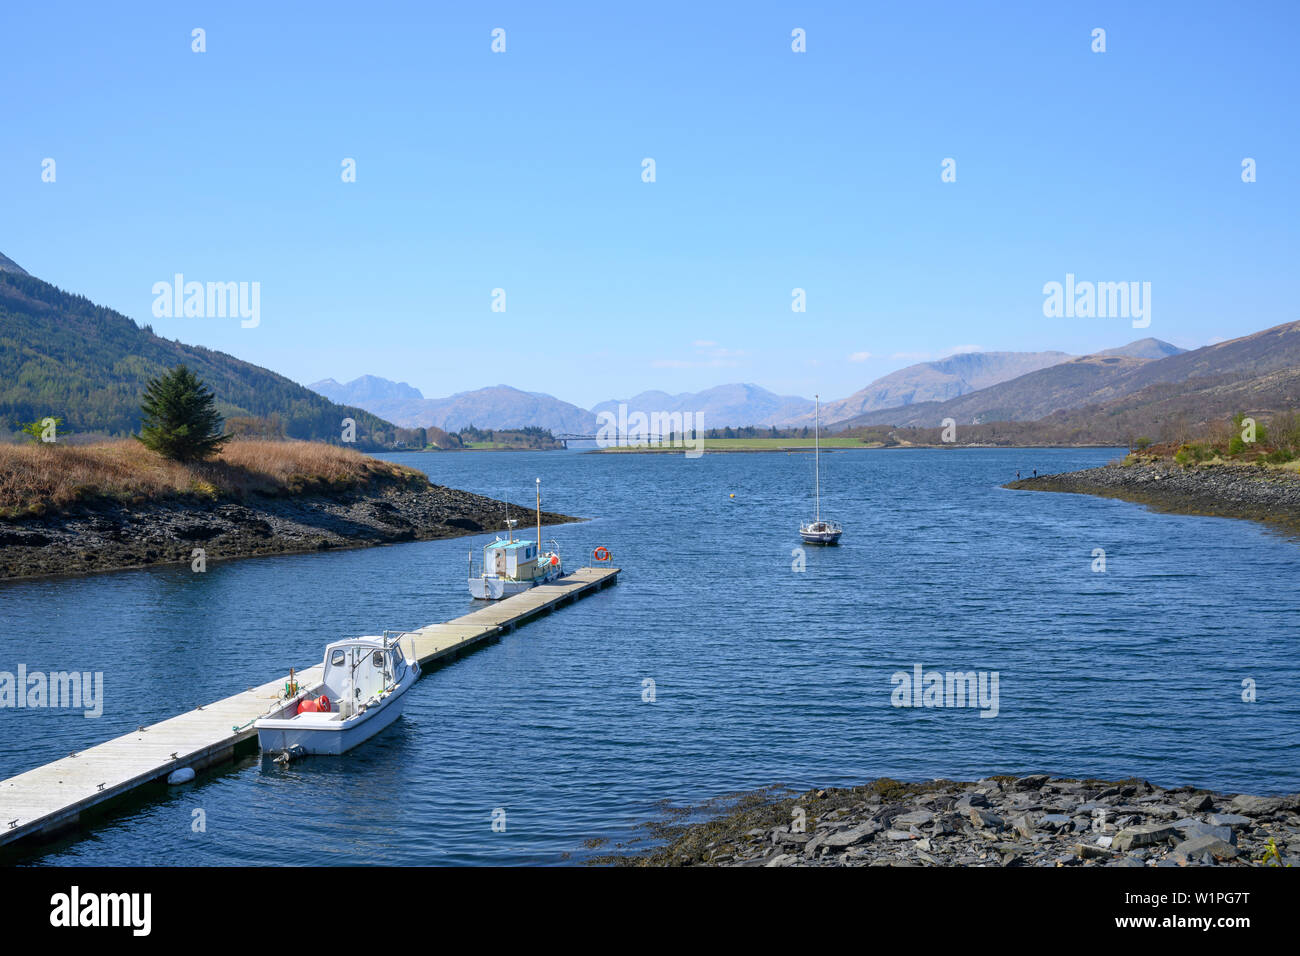 View of Loch Leven from Ballachulish near Glencoe in Northern Scotland Stock Photo